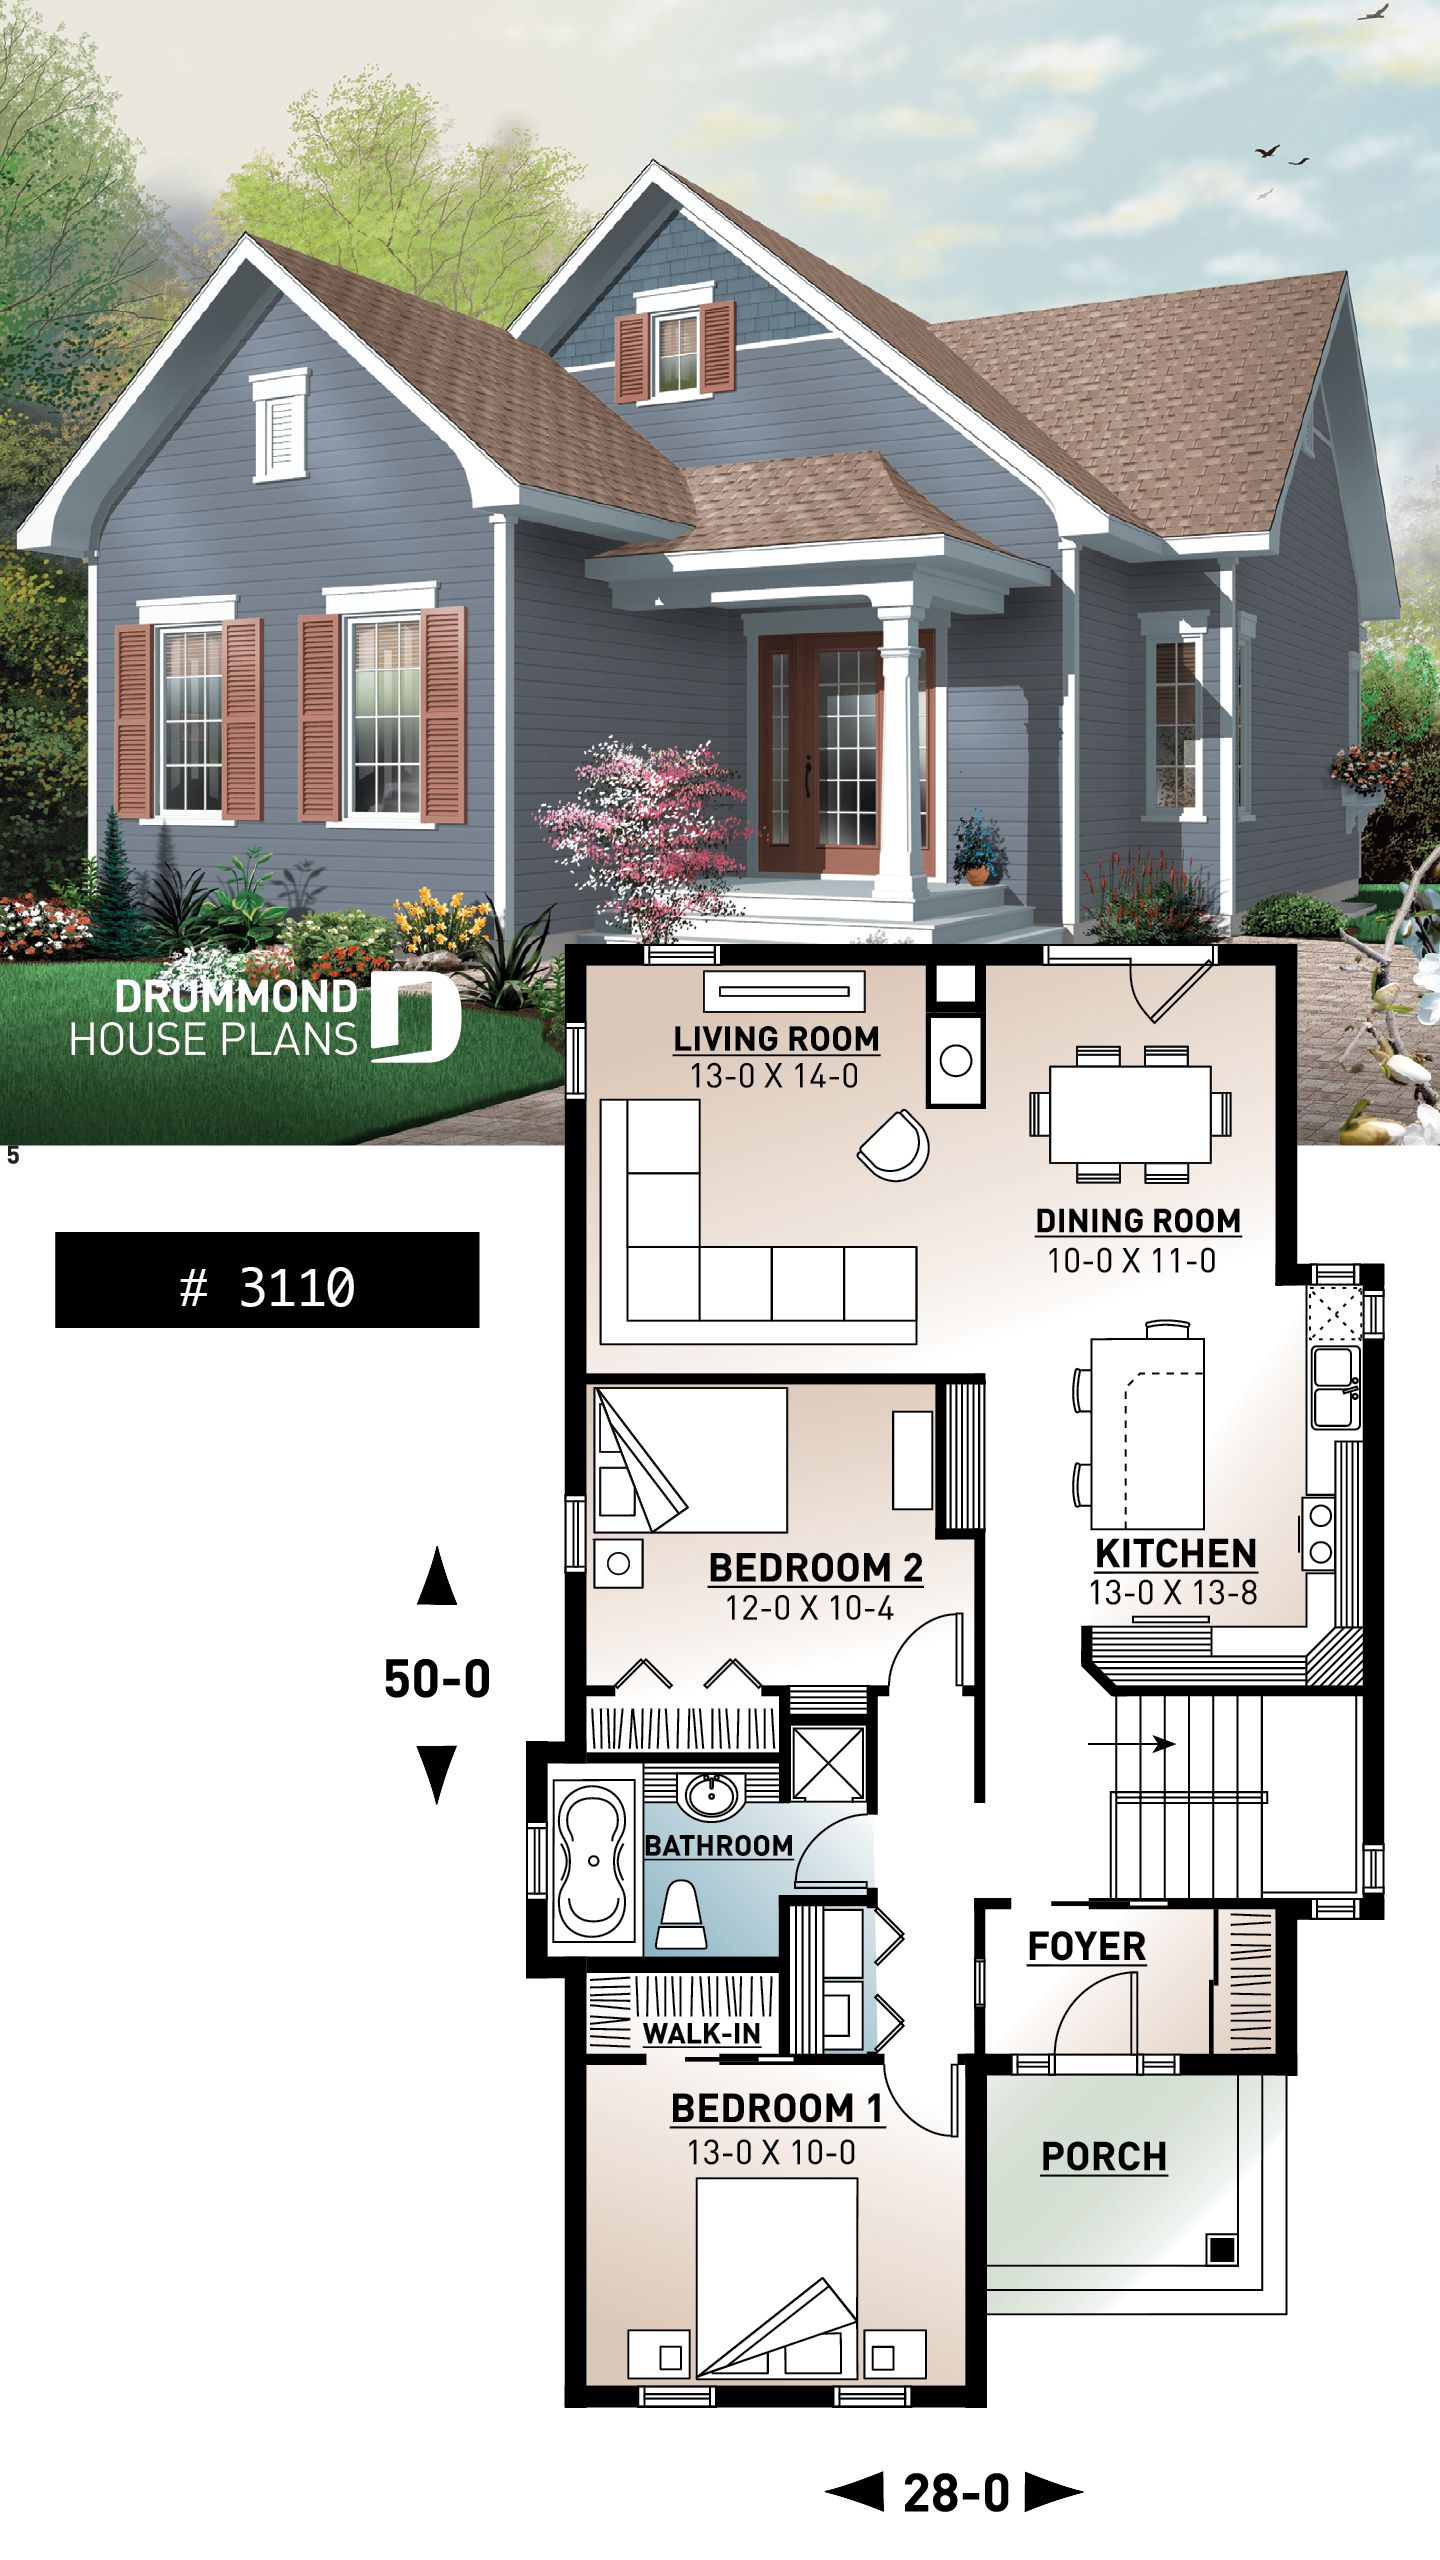 Cape cod bungalow house plan spacious 2 bedroom fireplace ideal for narrow lot